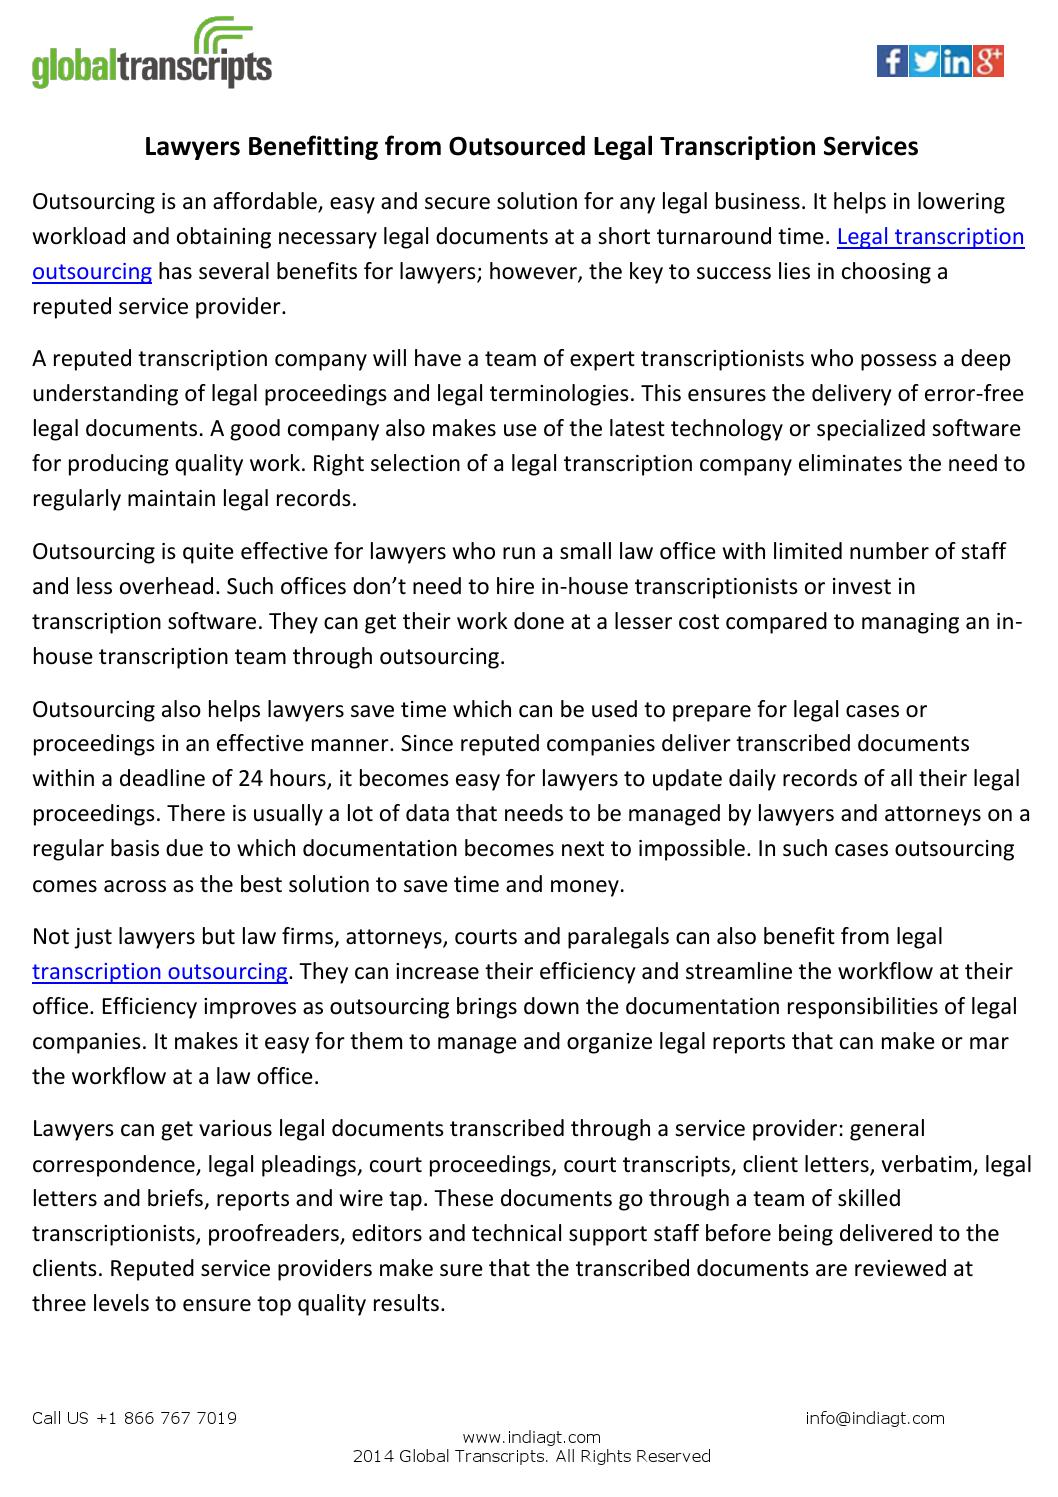 Lawyers Benefitting from Outsourced Legal Transcription